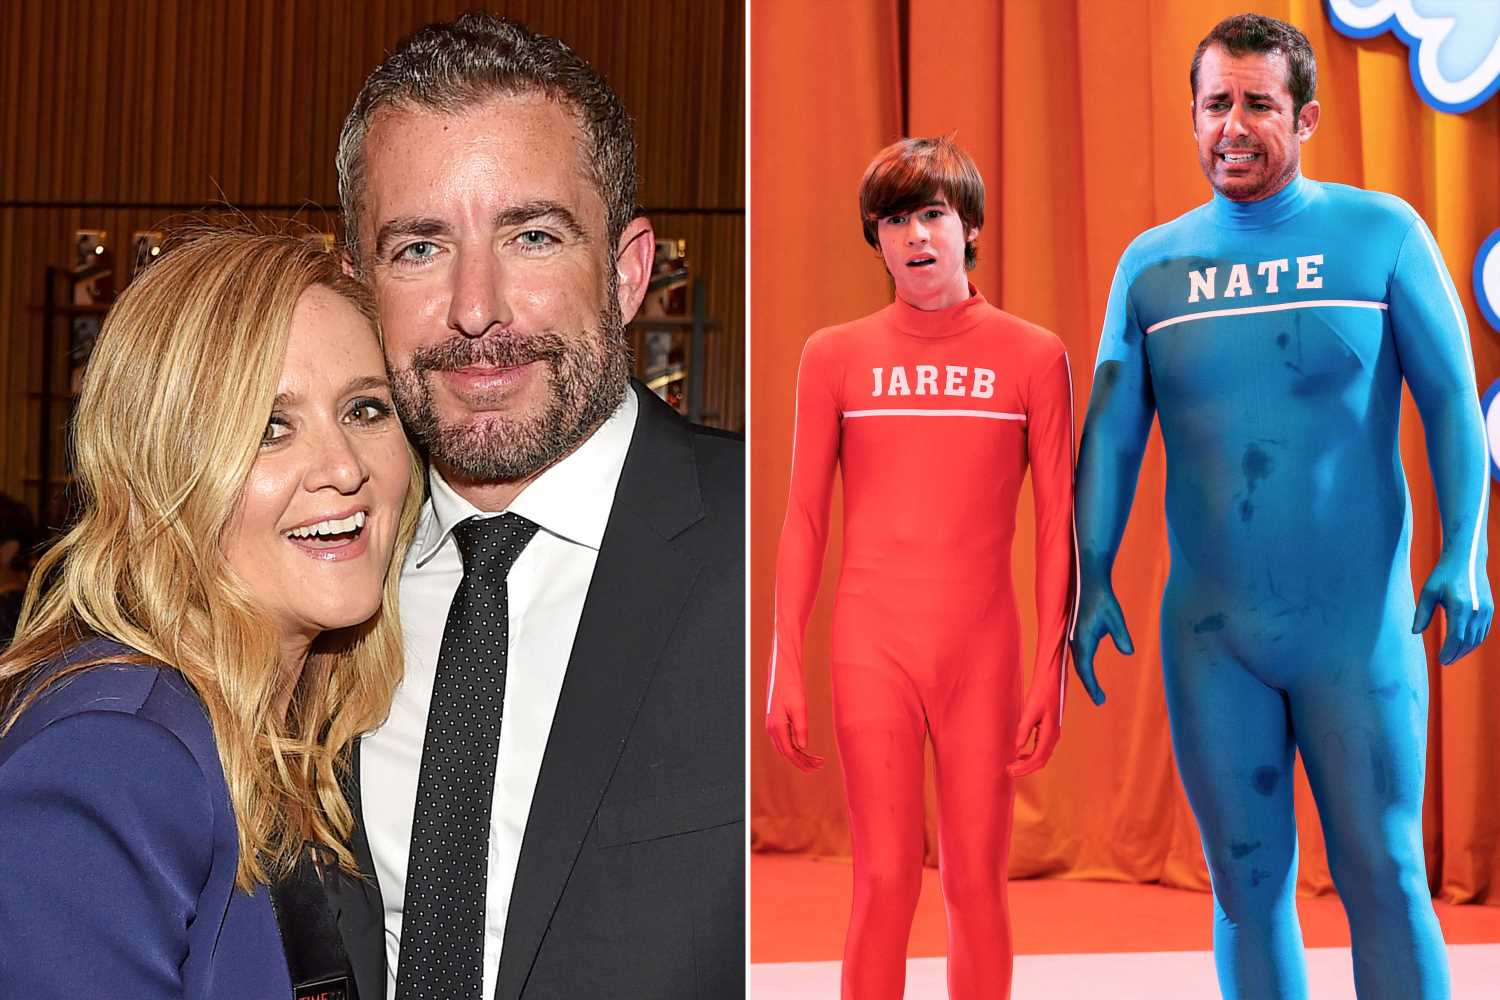 Jason Jones' TV family would envy his 'perfect' life with Samantha Bee